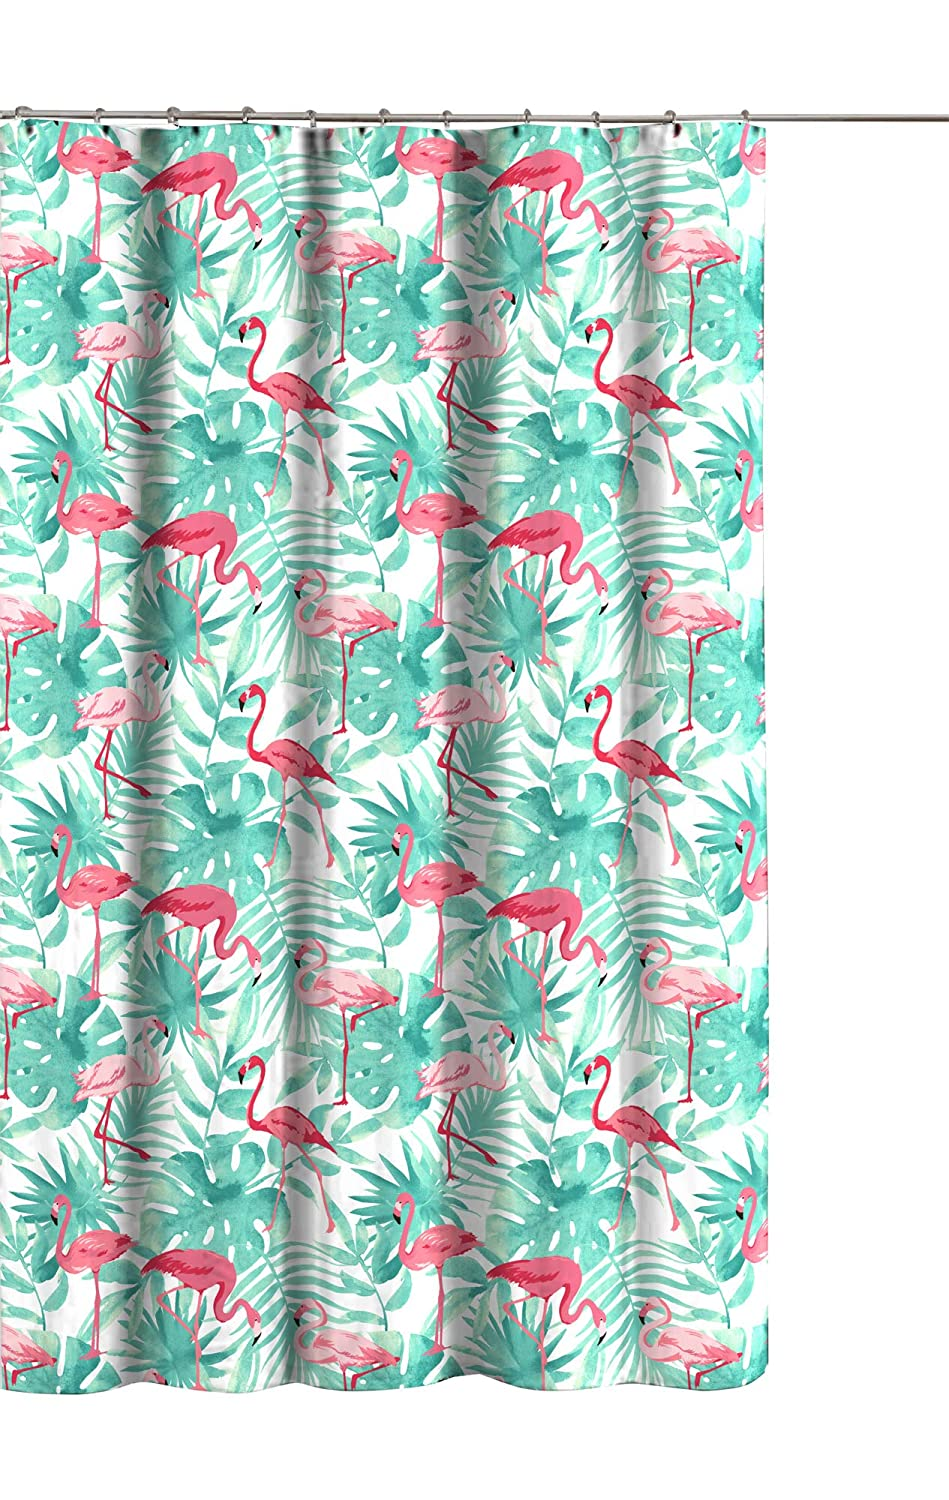 Tropical Palm Leaves Flamingo Collection Fabric Shower Curtain Pink Teal White